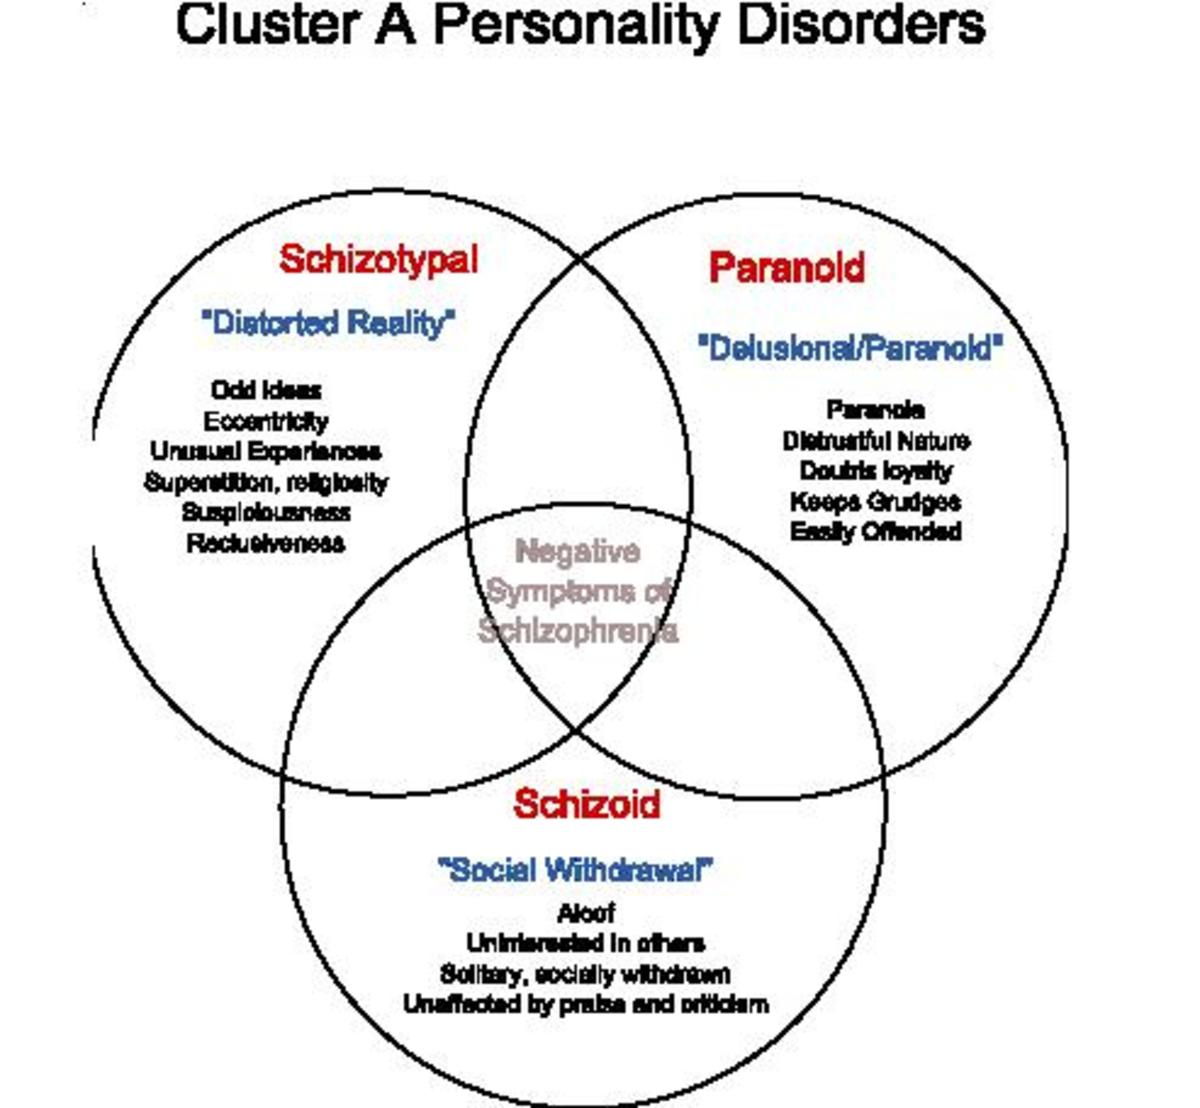 from page on the personality disorder (when compared to other personality disorders)